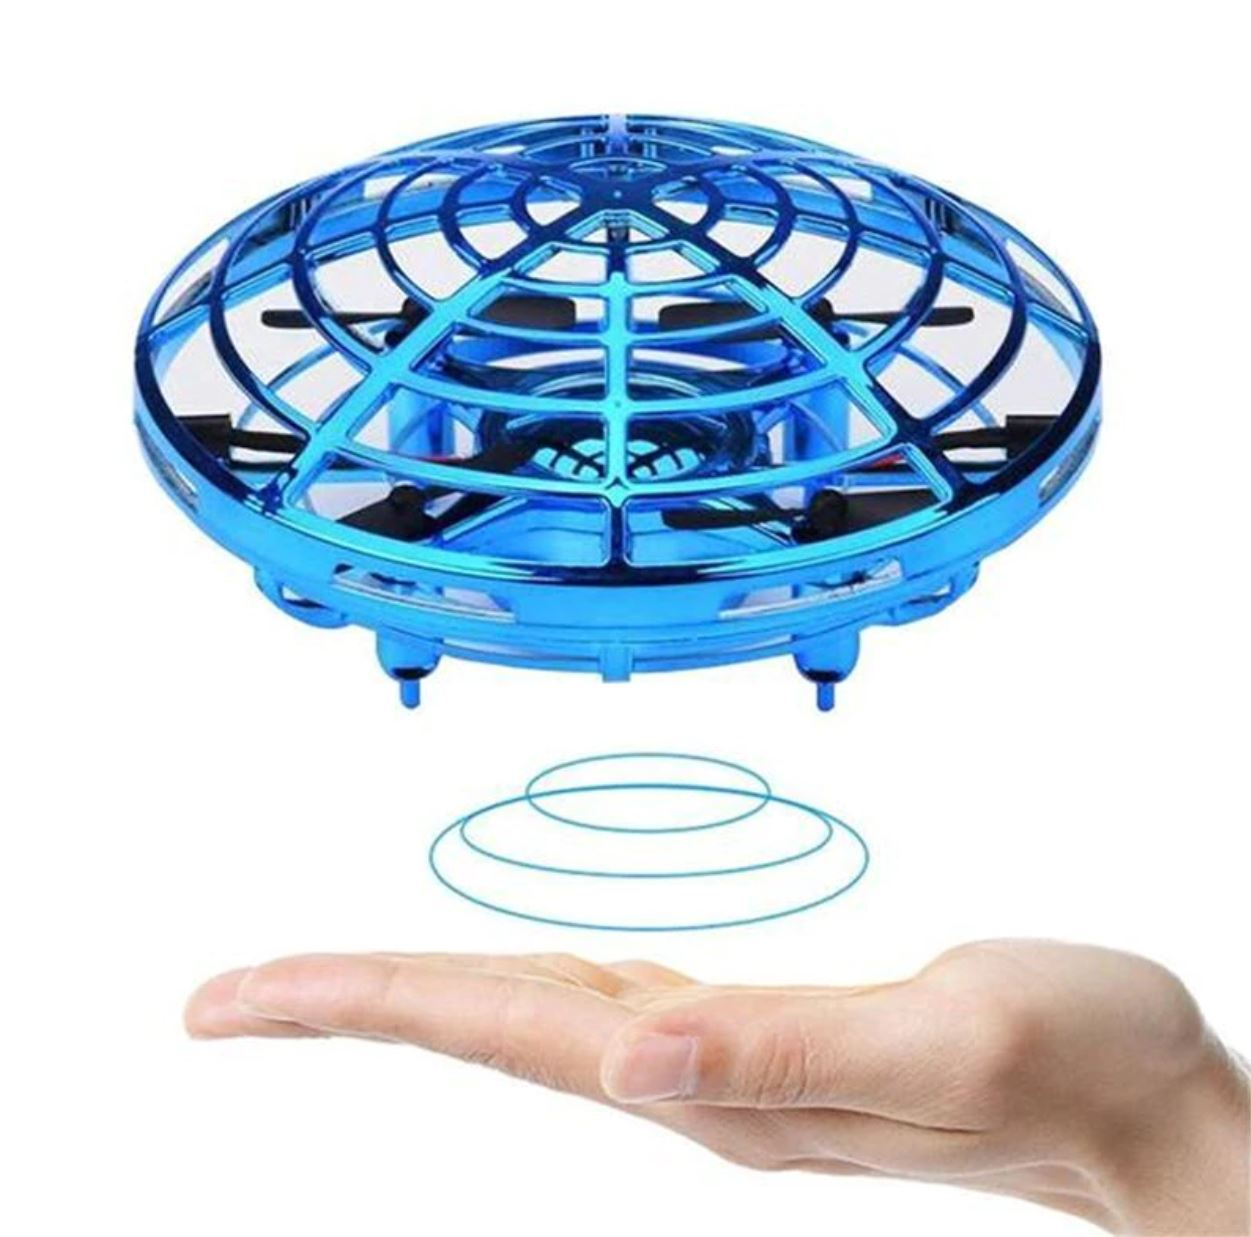 Flying UFO drone induction toy